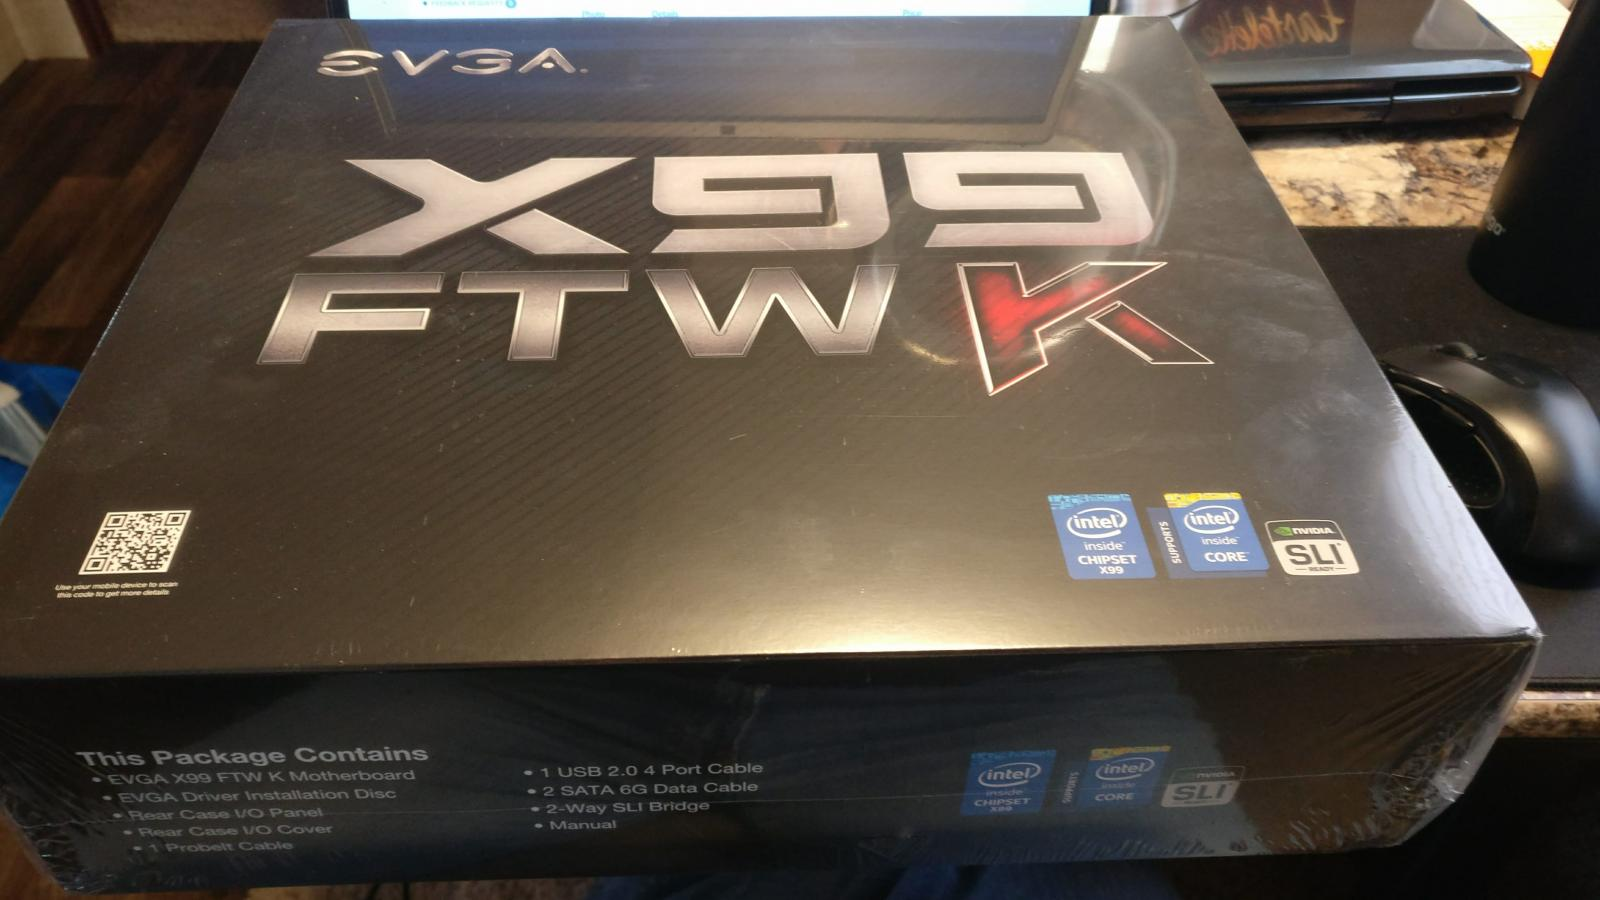 Photo of EVGA x99 FTW K Motherboard NIB